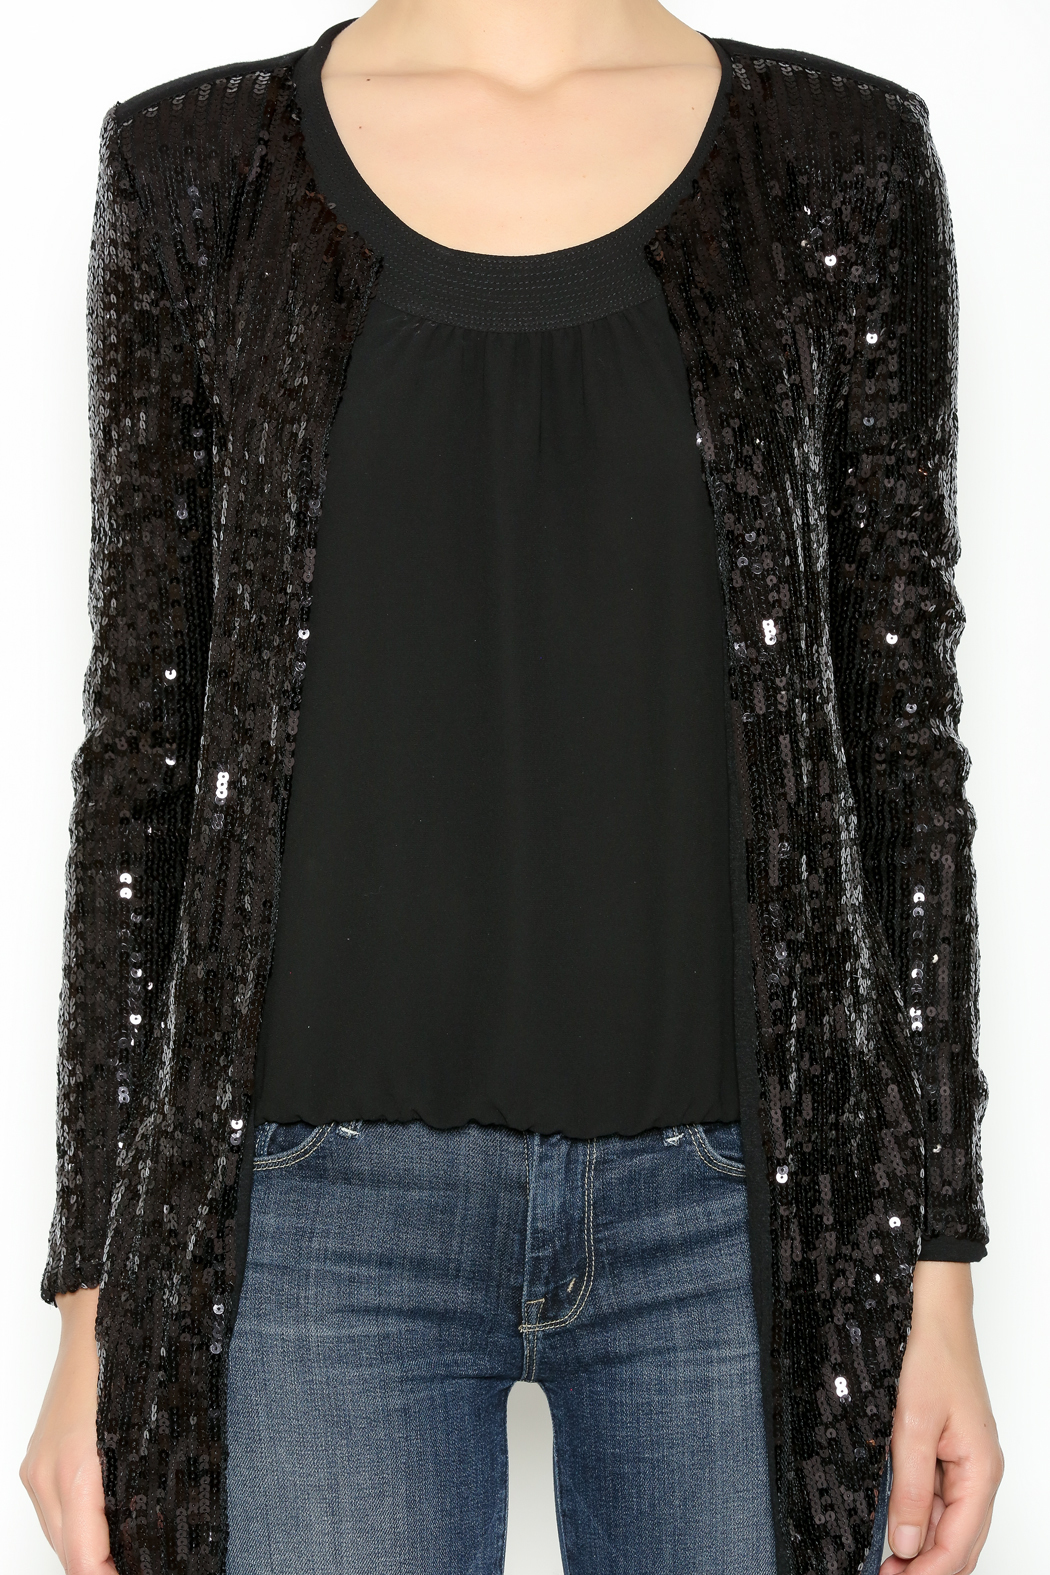 Black Sequin Blazer from Las Vegas by Glam Squad Shop — Shoptiques